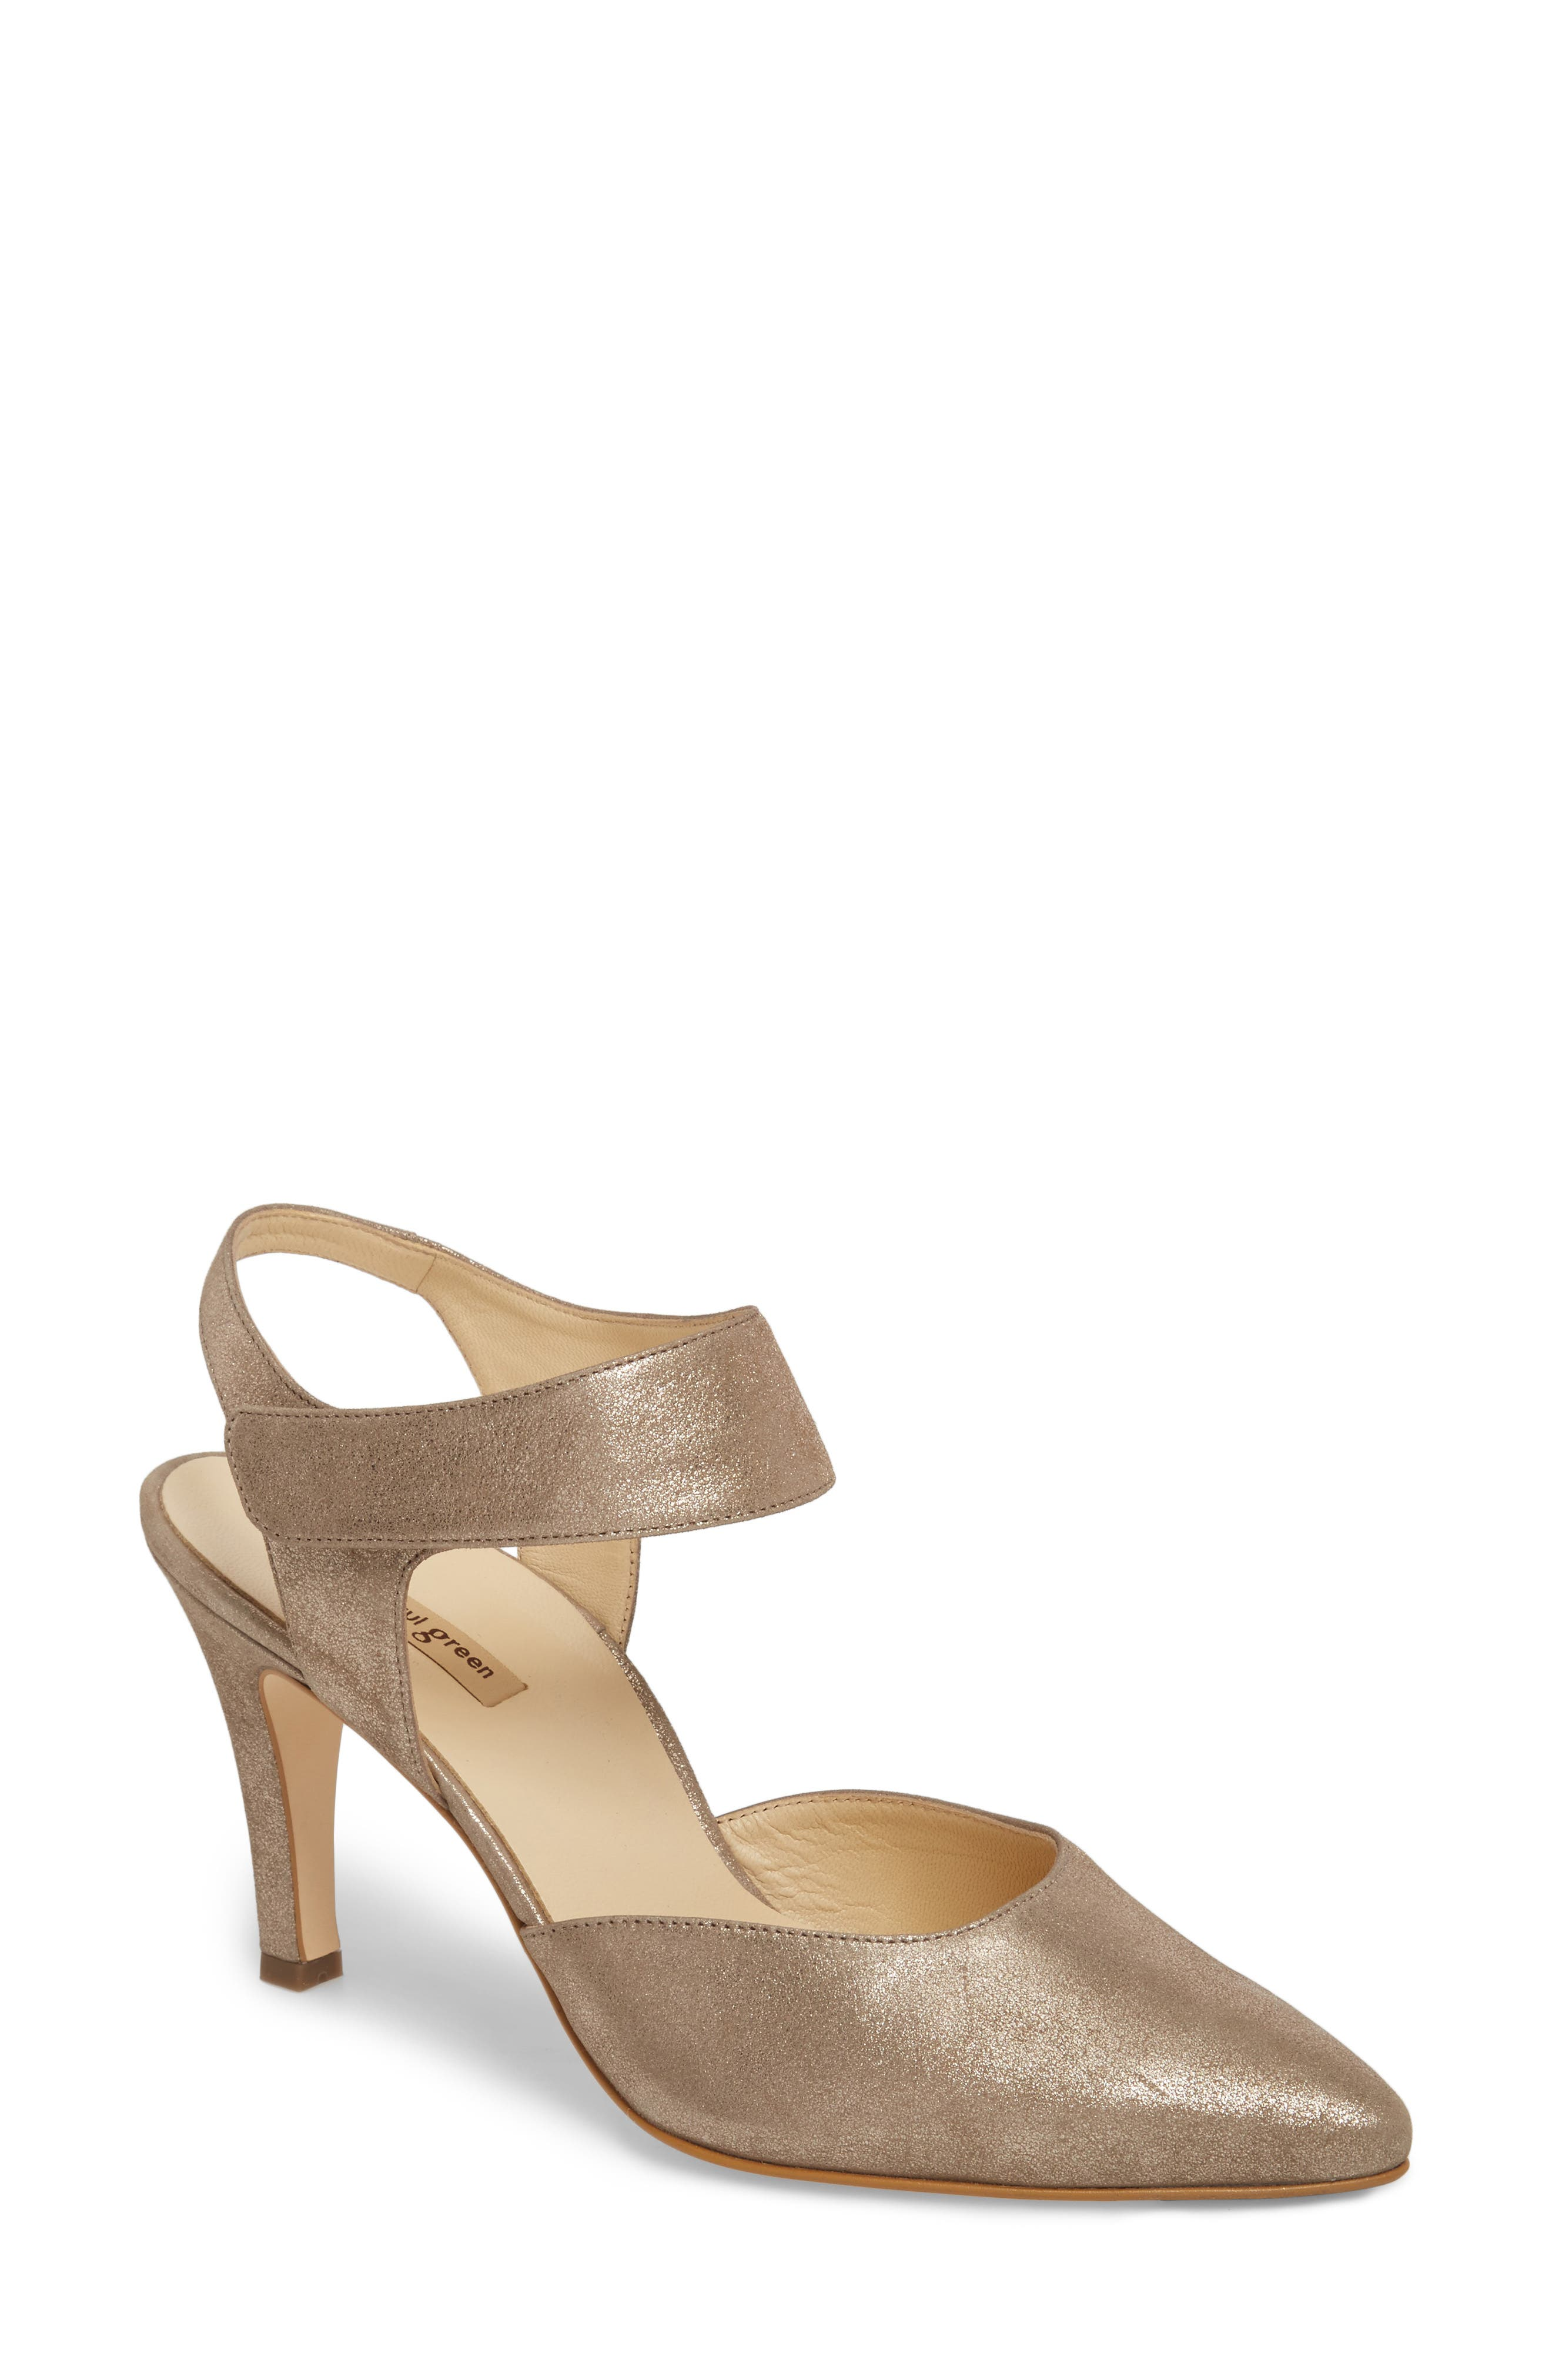 Nicolette Pointy Toe Pump,                         Main,                         color, Champagne Metallic